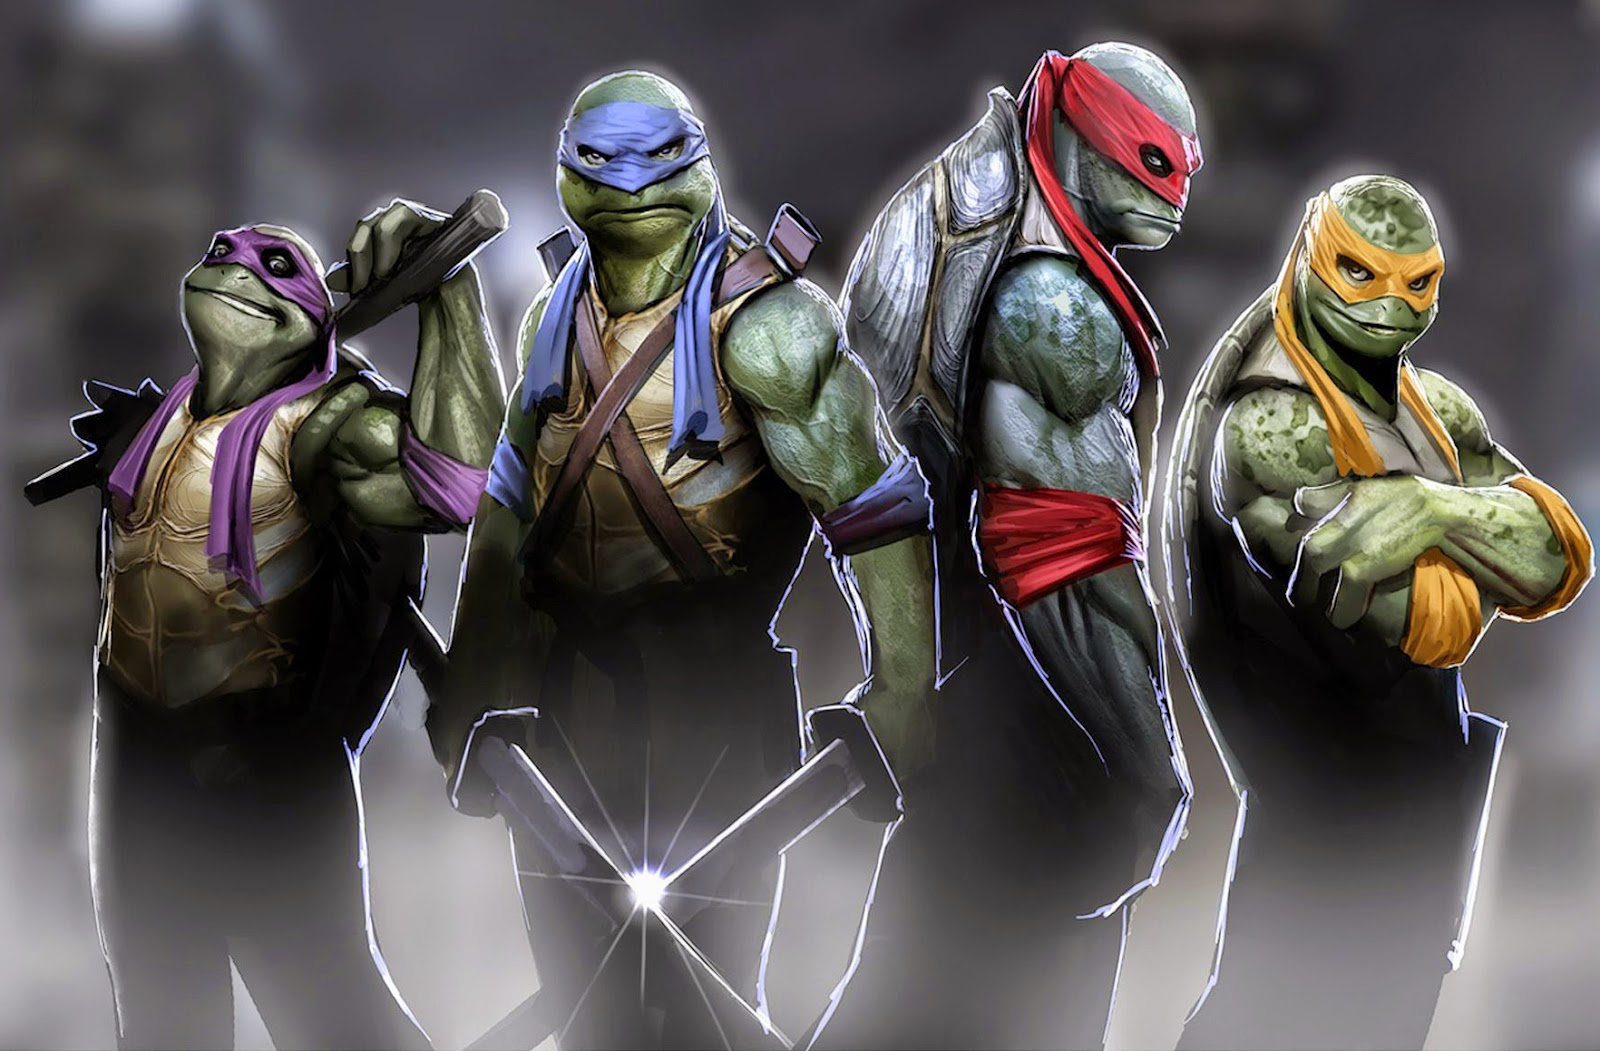 Teenage Mutant Ninja Turtles 2014 3D